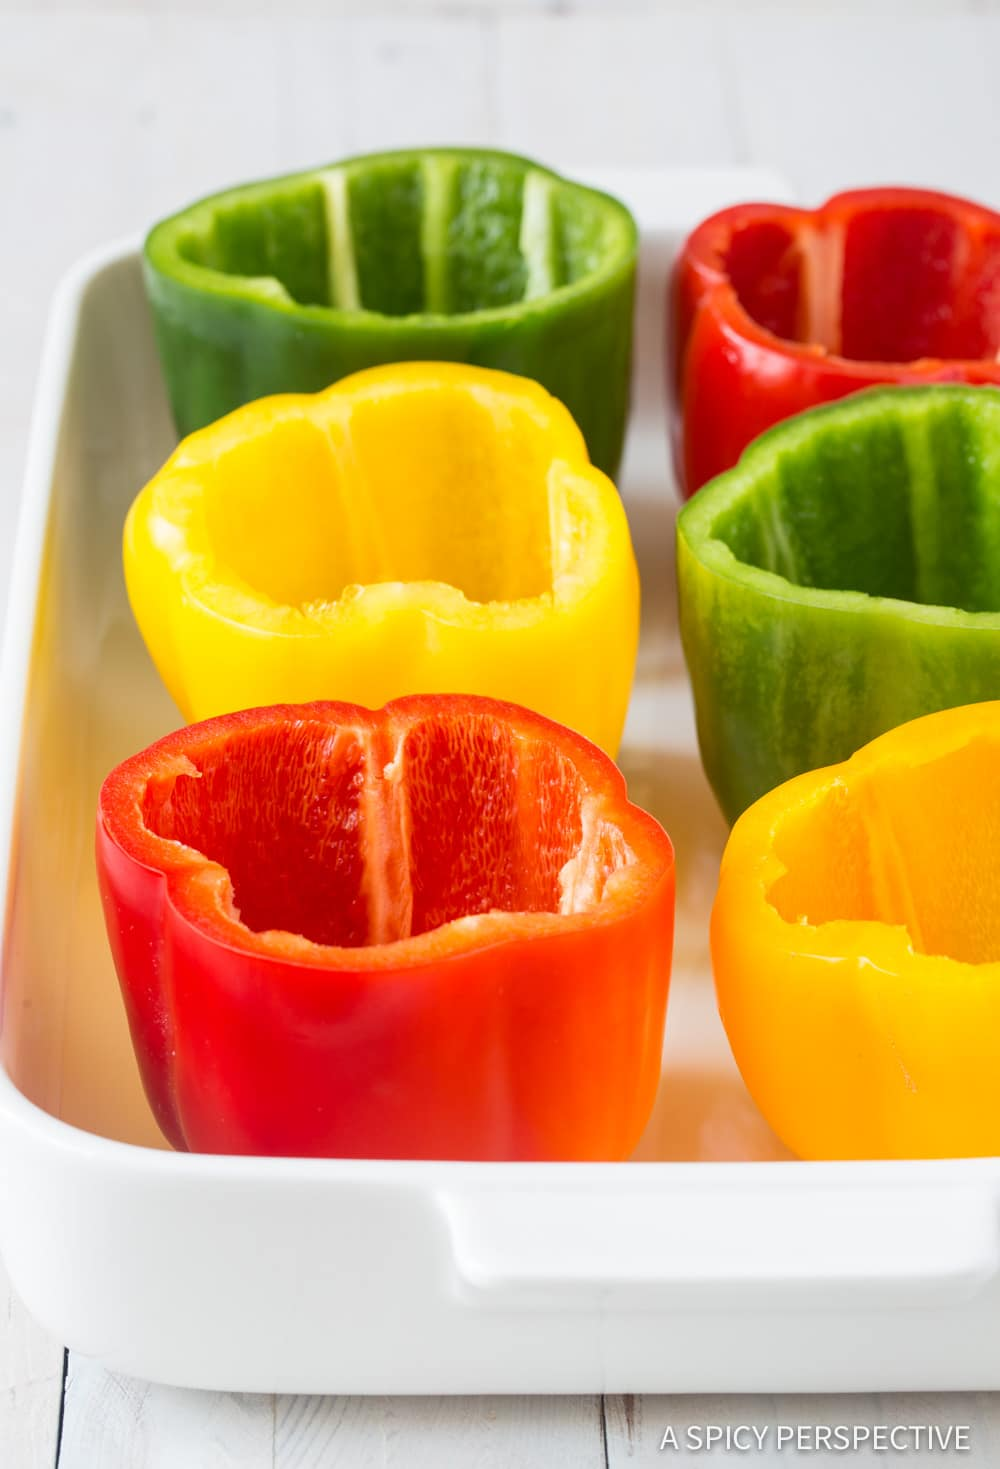 Making Chicken Pot Pie Stuffed Peppers Recipe #ASpicyPerspective